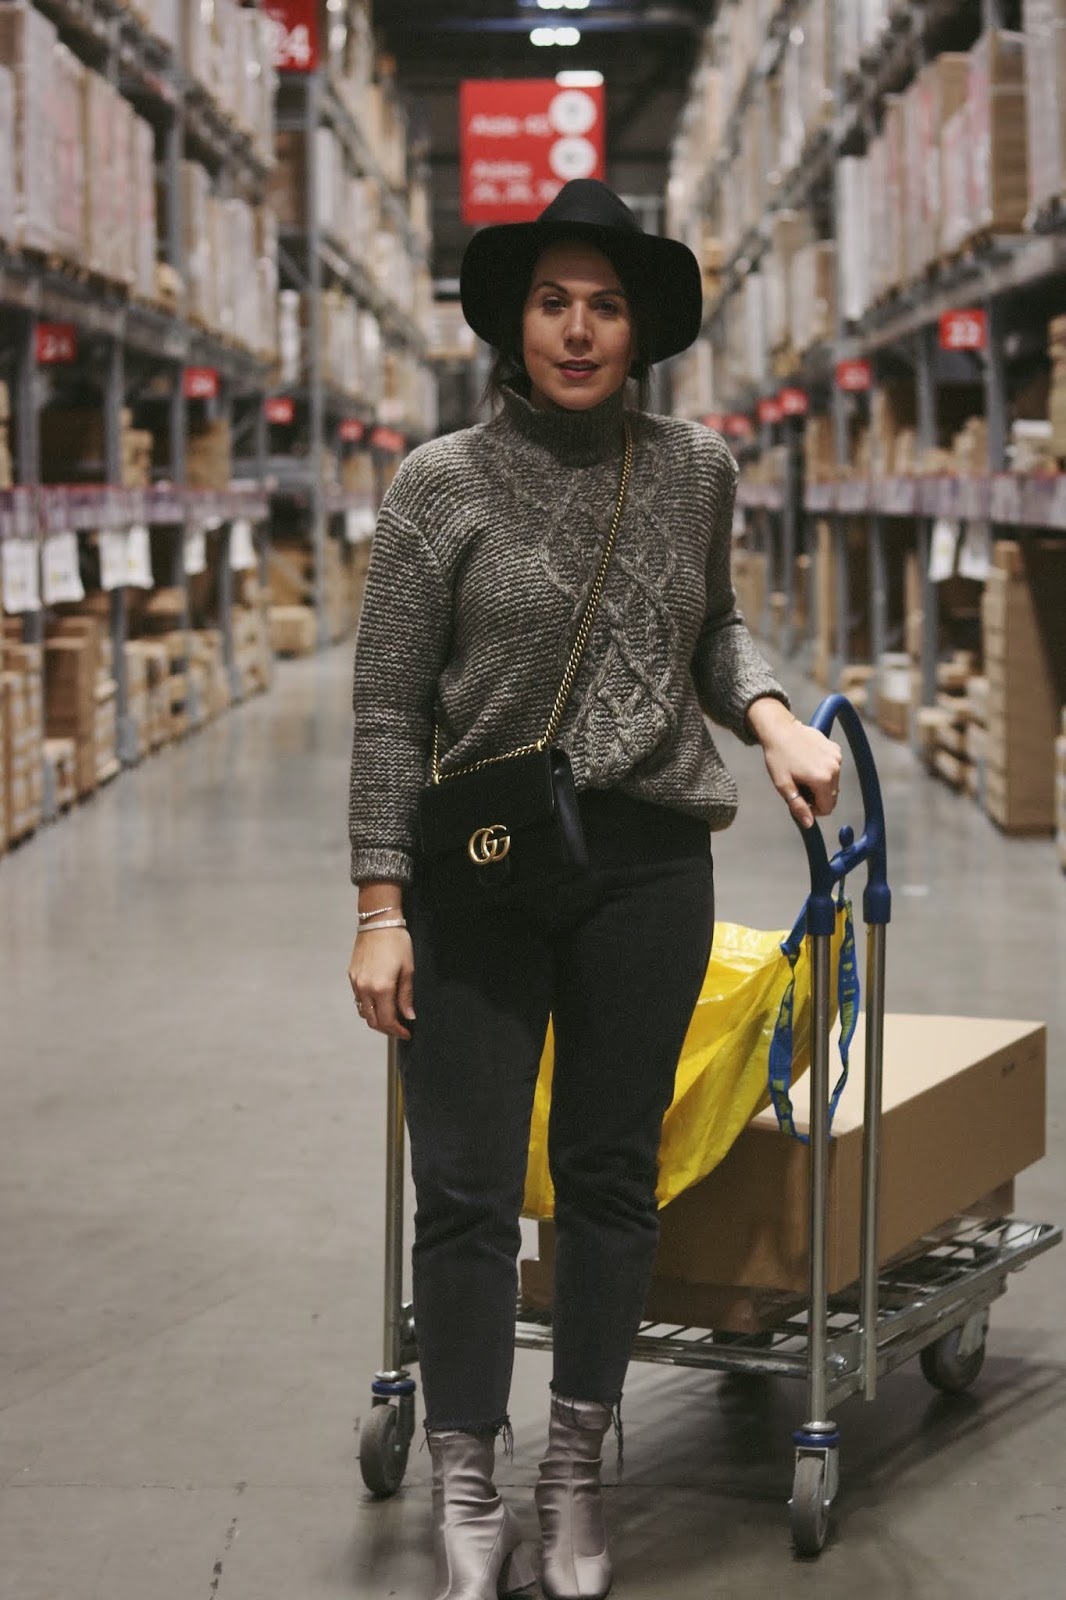 vancouver fashion blogger backdrop oversized cable sweater outfit ikea